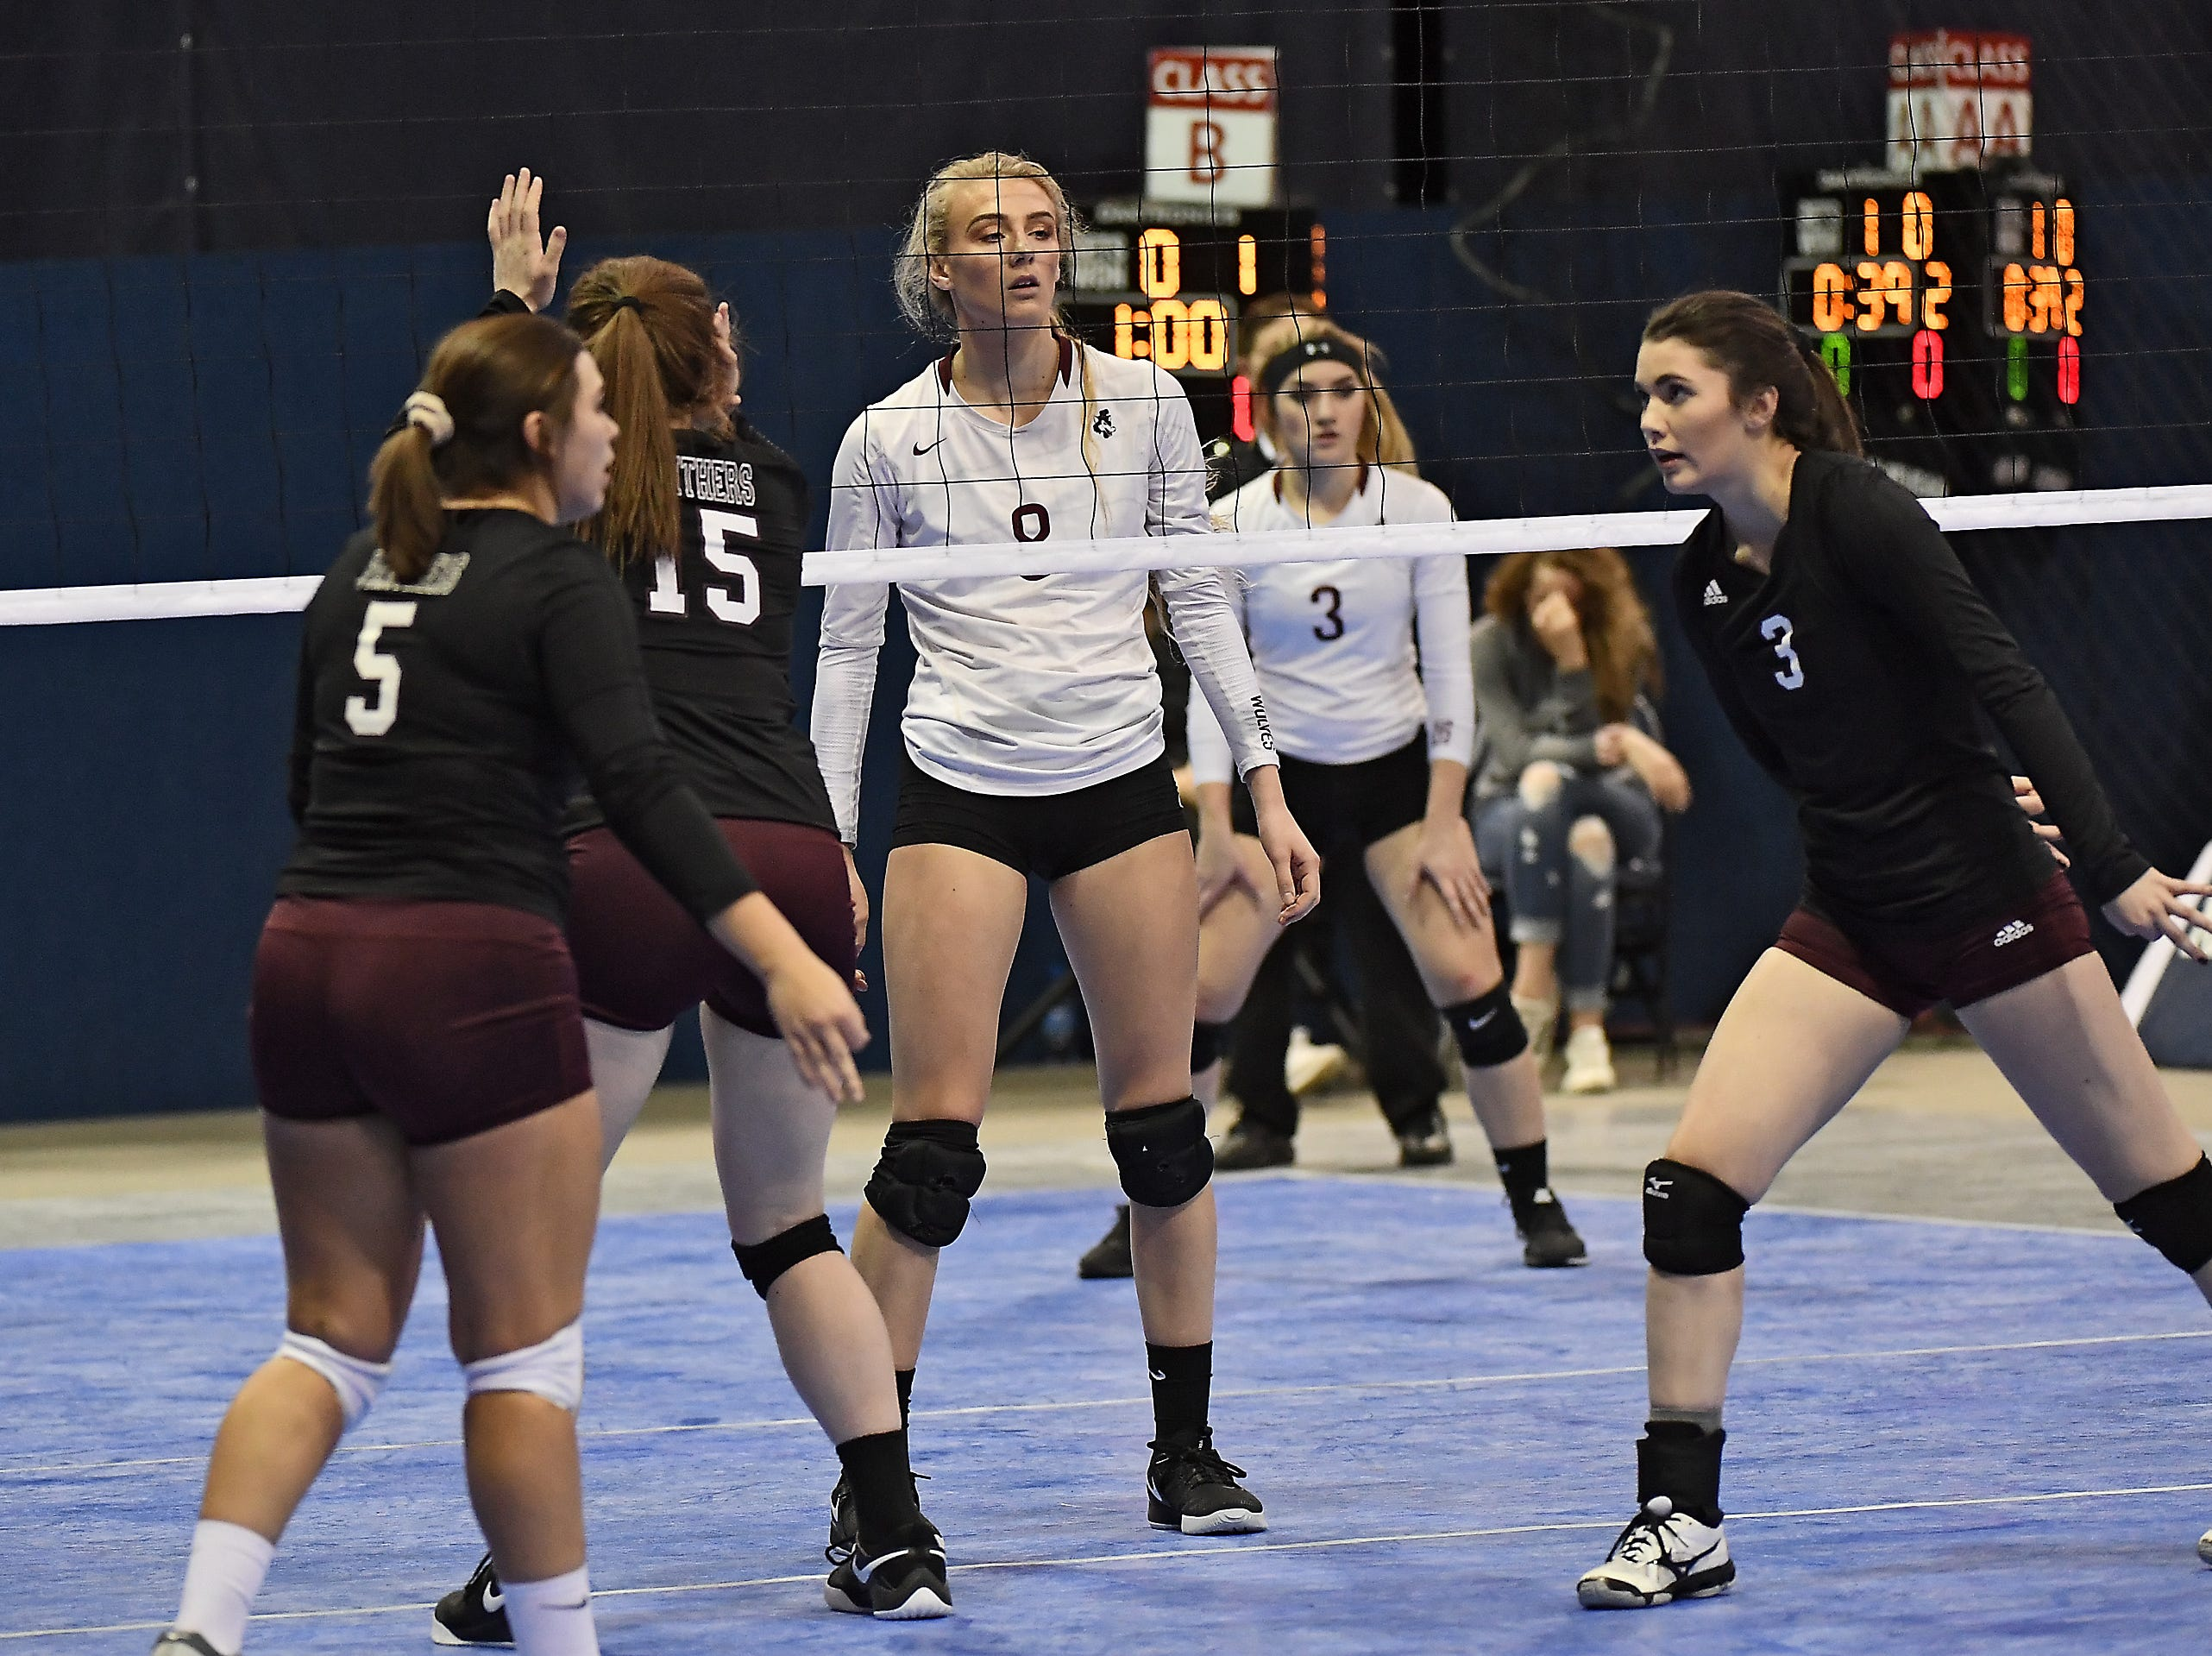 Abby Juve of Wolf Point roams the net in a match with Roundup at the All-Class State Volleyball Tournament at the Brick Breeden Fieldhouse in Bozeman Friday.